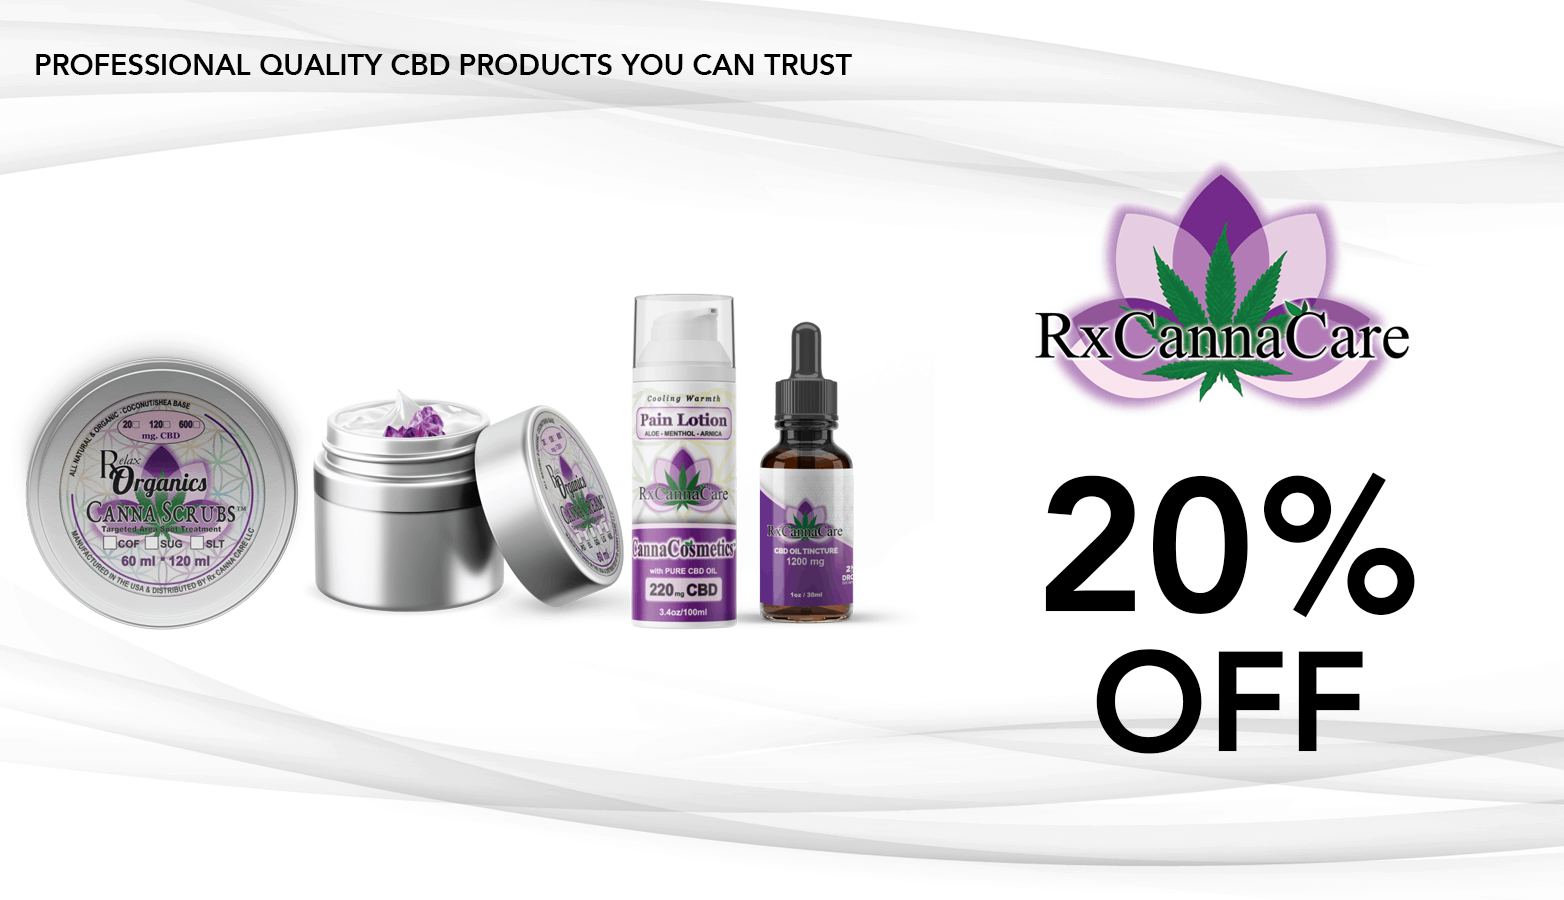 RxCannaCare CBD Coupon Code discounts promos save on cannabis online Website redesign